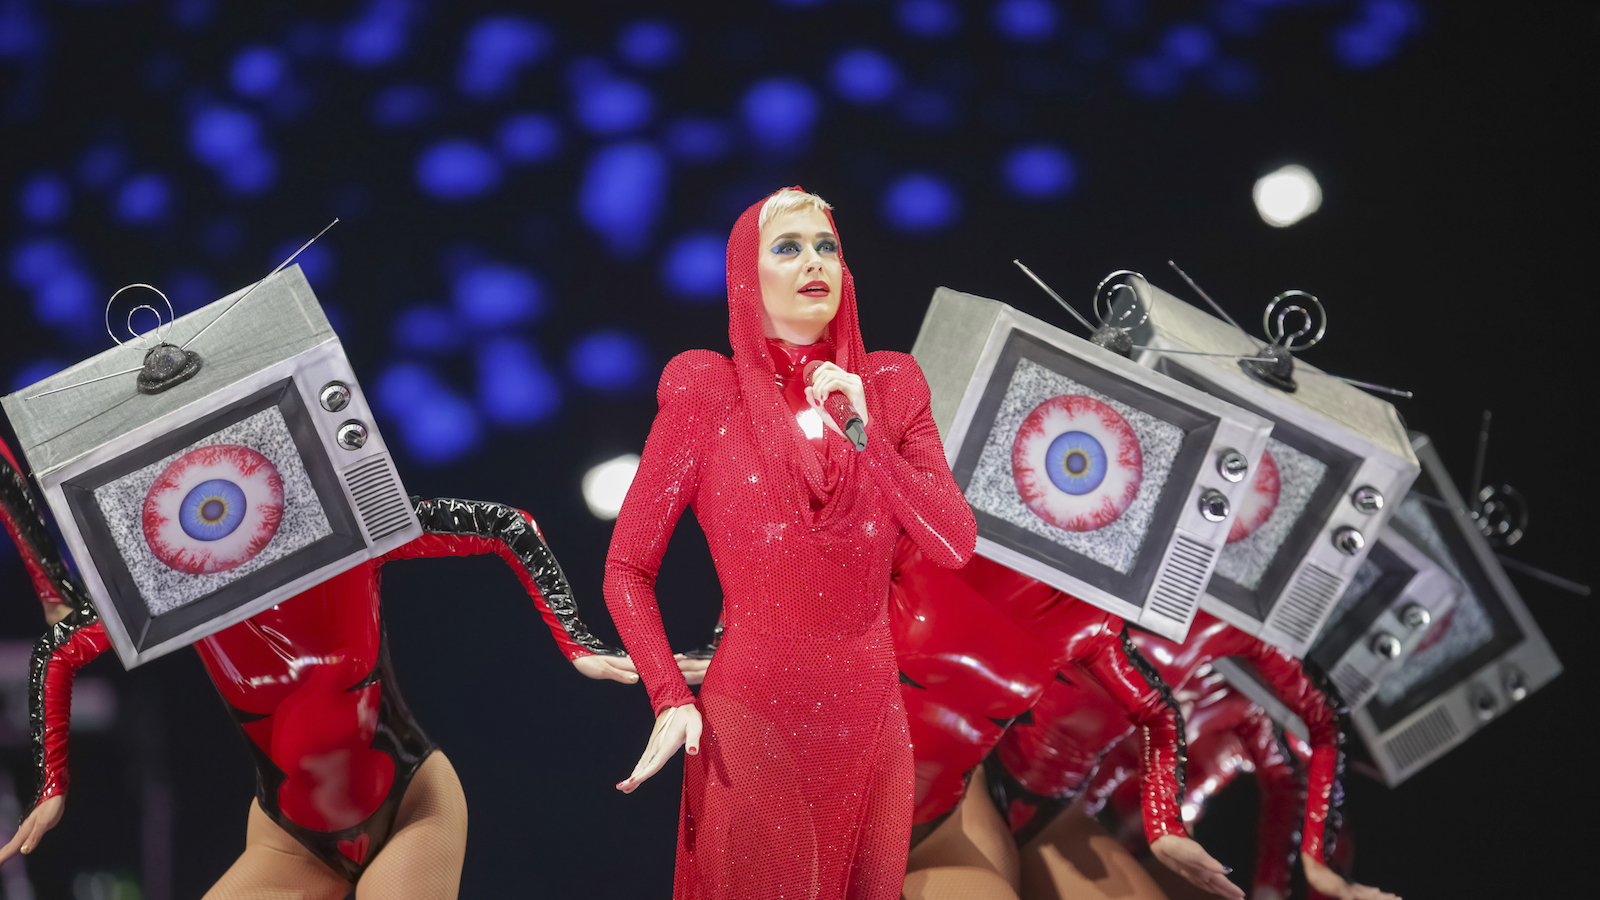 Singer/songwriter Katy Perry performs on stage at the Capitol One Arena on Monday, Sept. 25, 2017, in Washington. (Photo by Brent N. Clarke/Invision/AP)